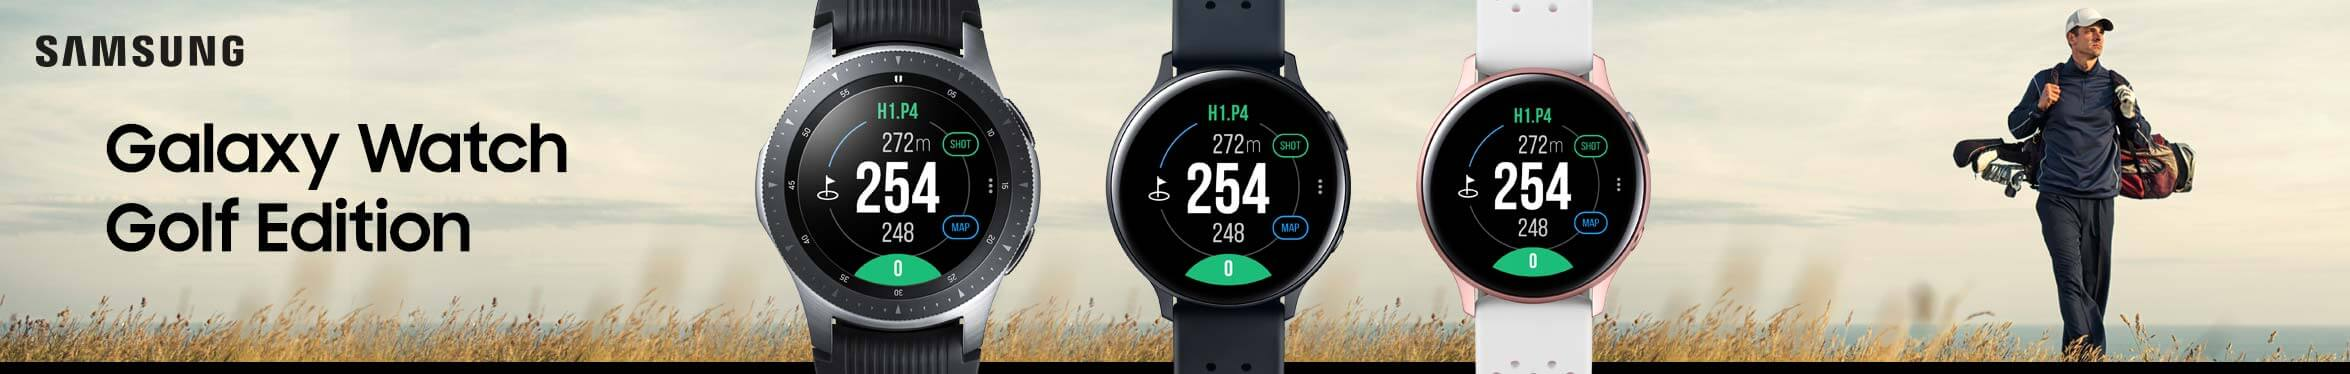 Samsung Galaxy Watch Golf Edition Banner